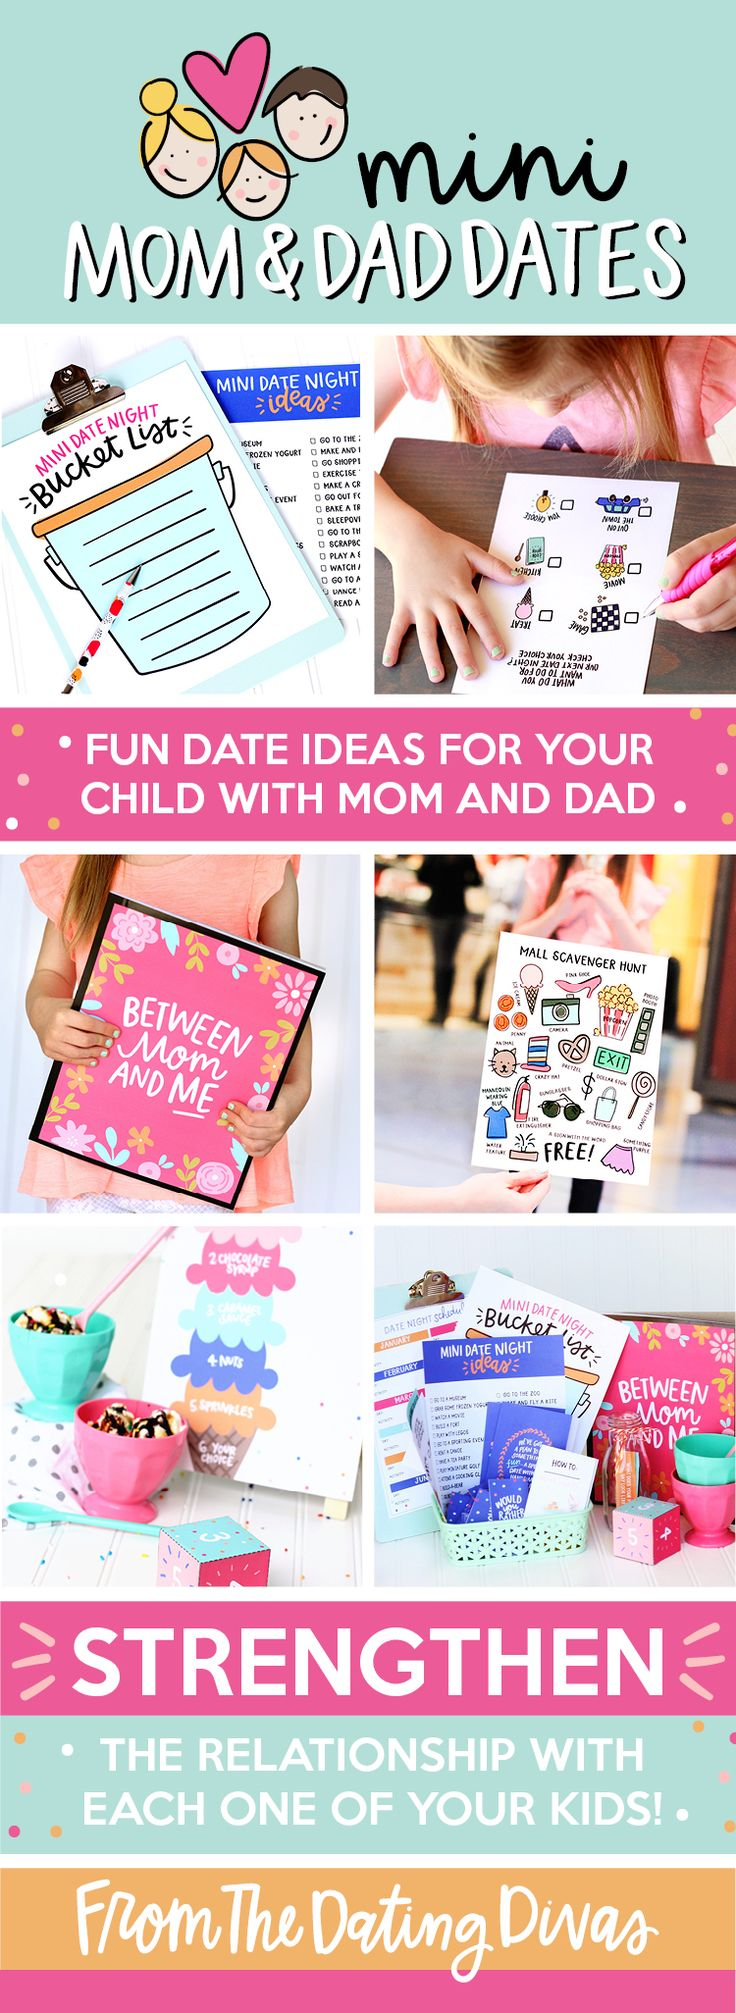 Free online dating for kids